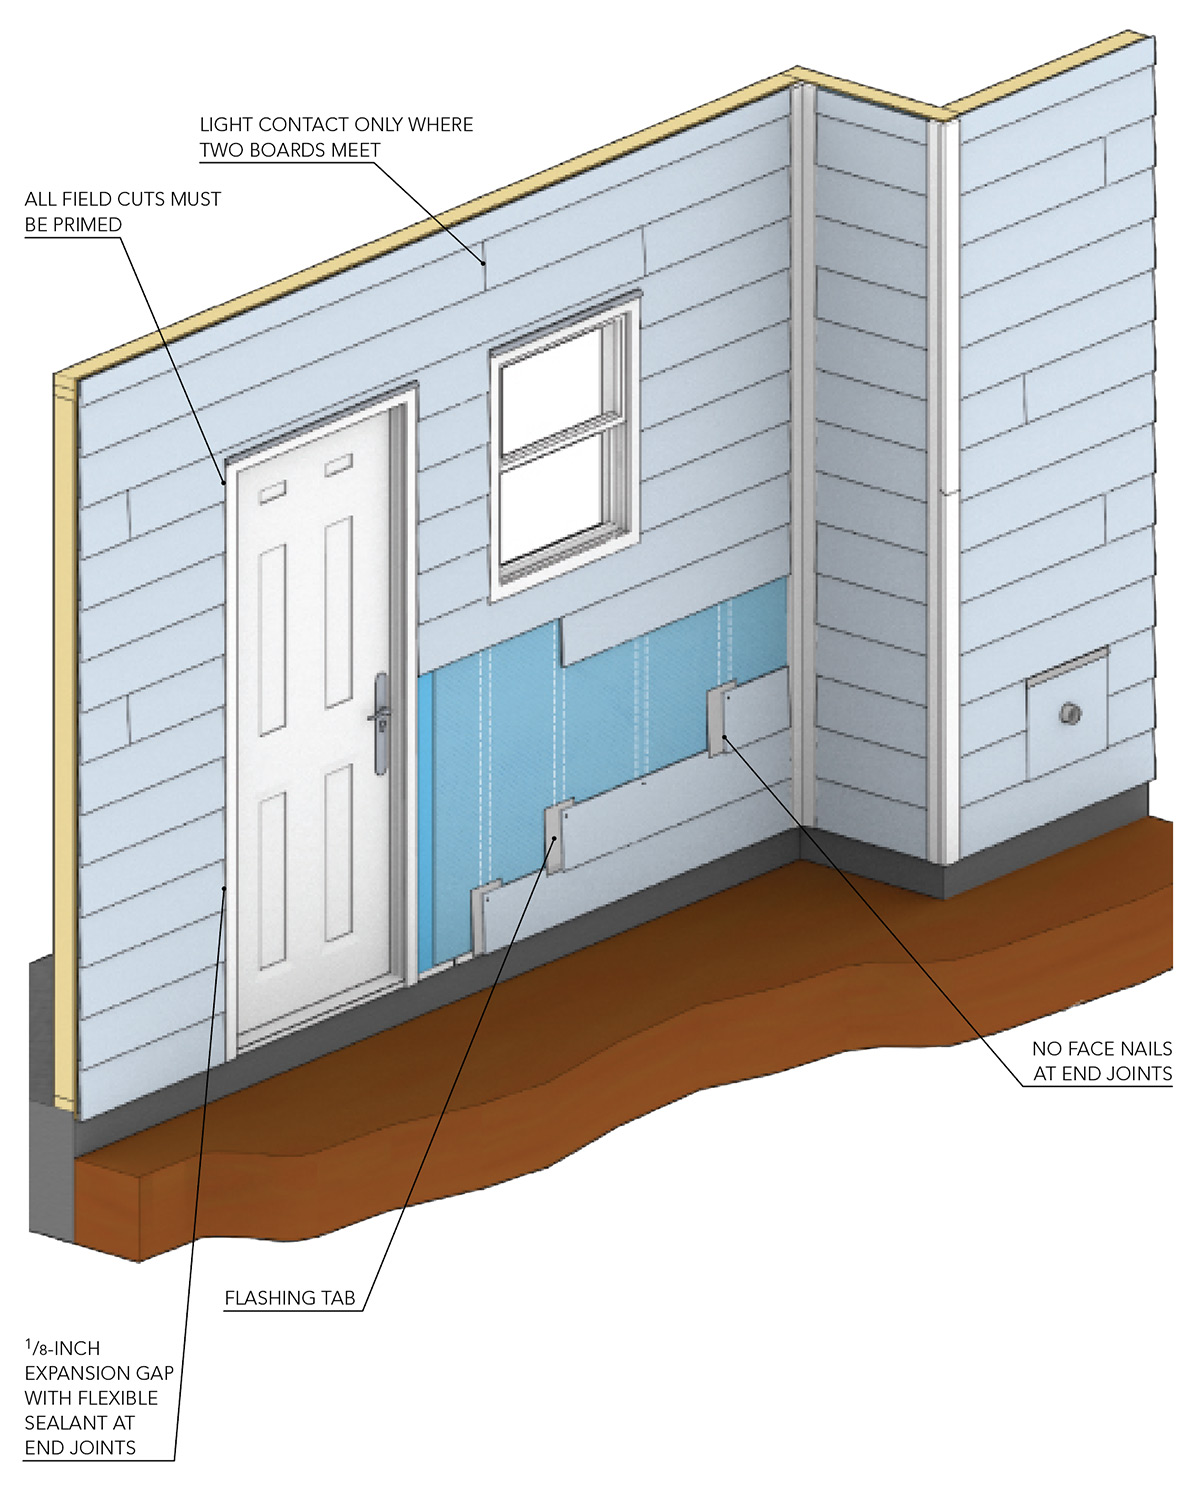 diagram showing fiber-cement siding best practices